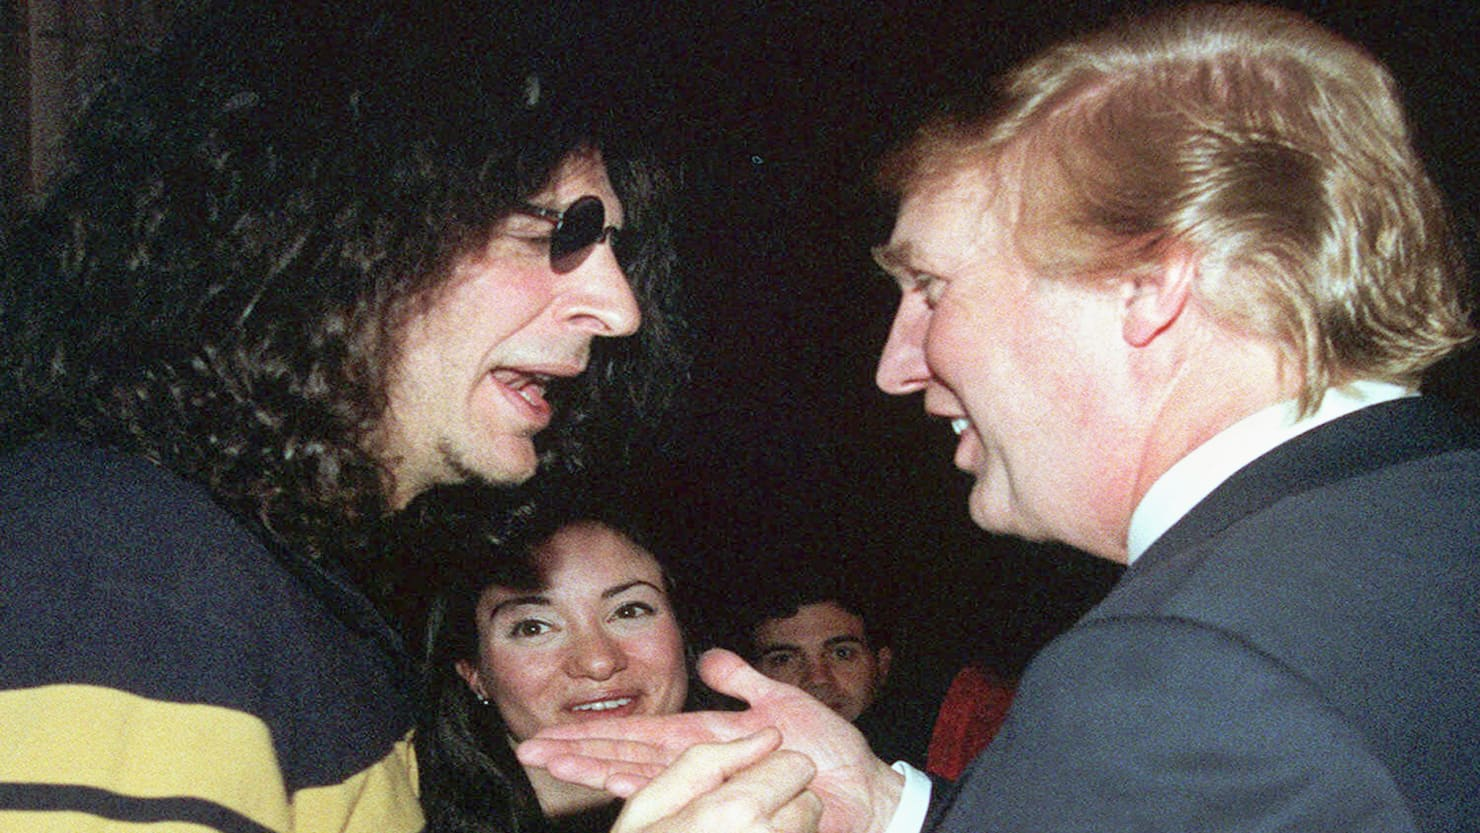 Howard Stern: 'Trump Asked Me to Speak at the Republican Convention'